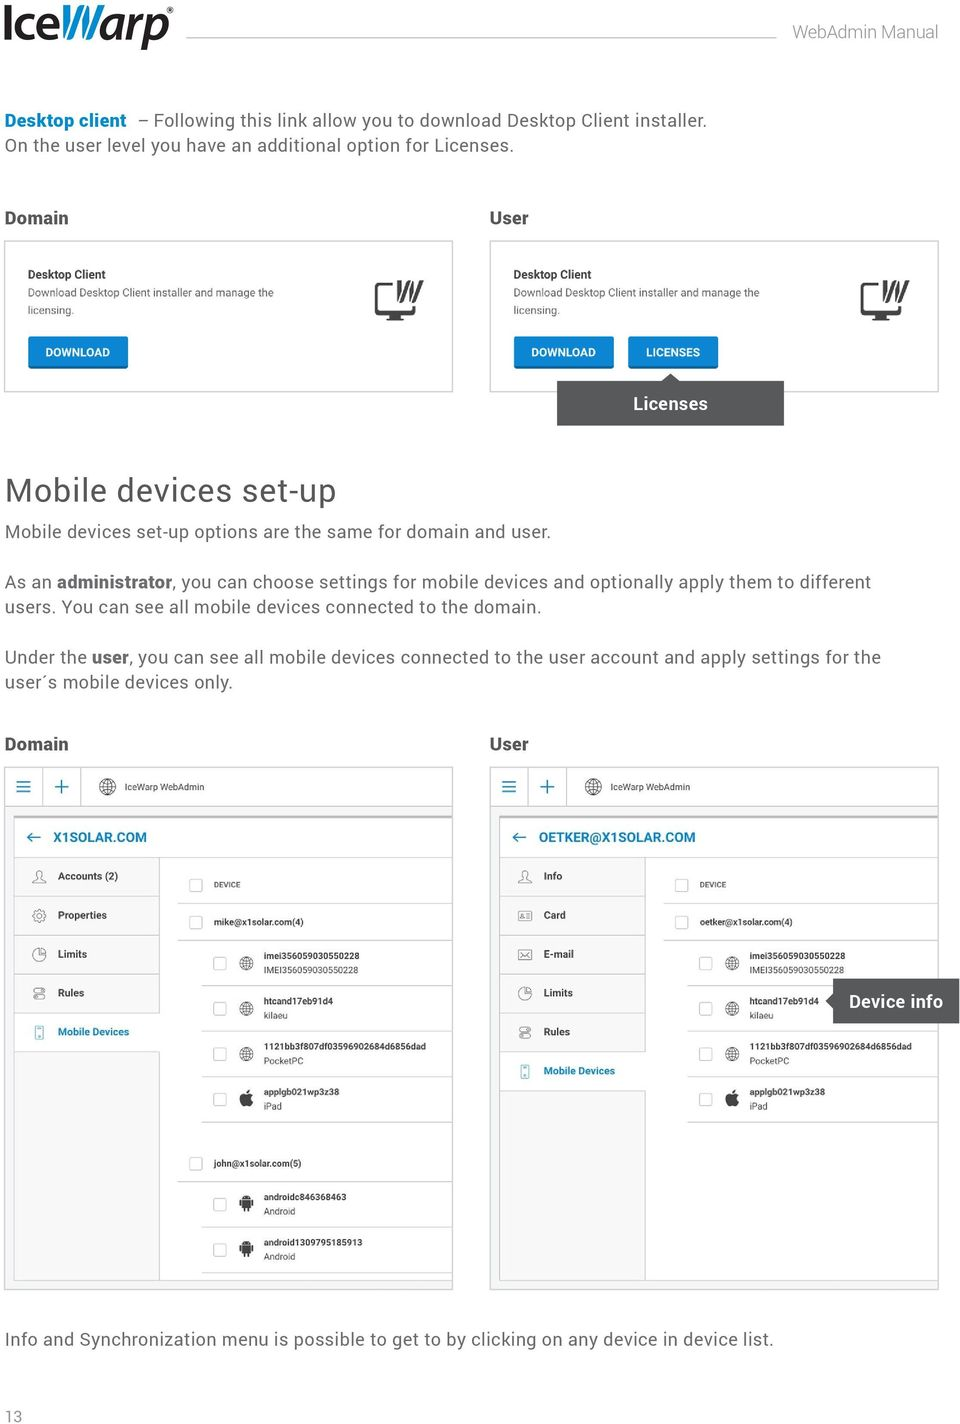 As an administrator, you can choose settings for mobile devices and optionally apply them to different users. You can see all mobile devices connected to the domain.